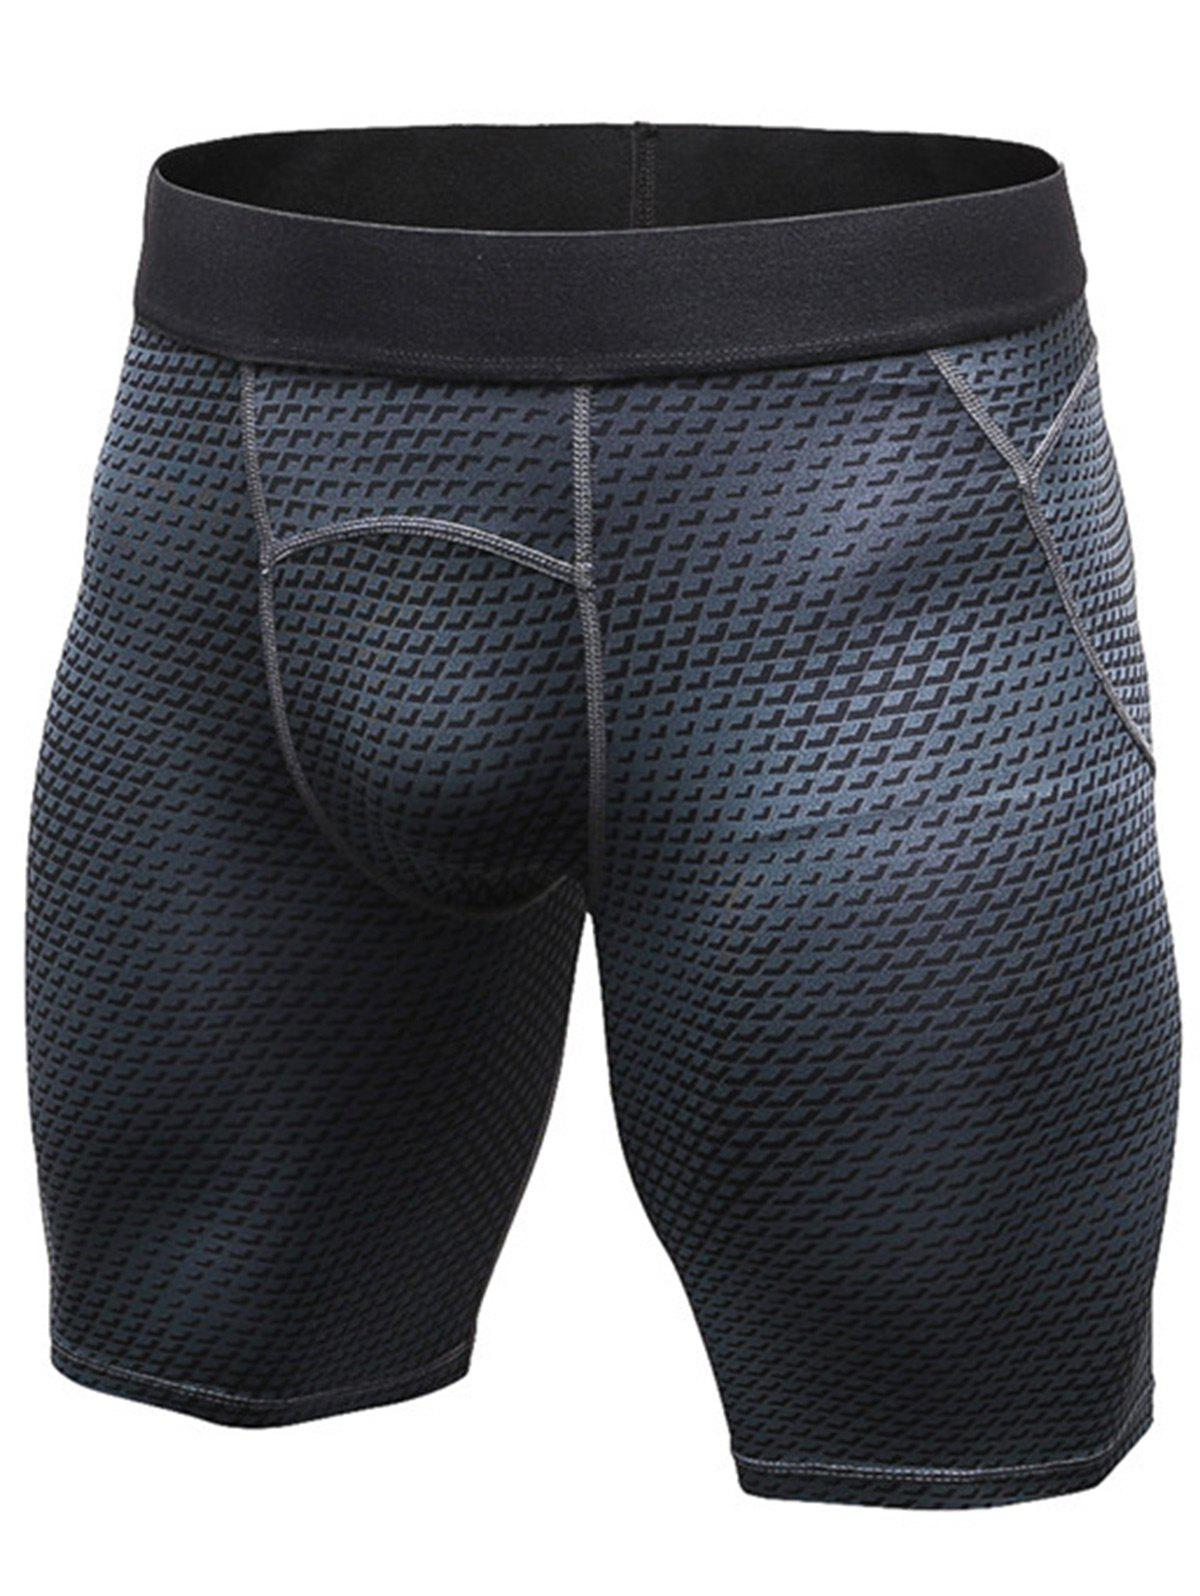 3D Geometric Print Quick Dry Fitted Gym ShortsMEN<br><br>Size: L; Color: BLACK; Type: Shorts; Material: Polyester,Spandex; Pattern Type: Geometric; Elasticity: Elastic; Weight: 0.1900kg; Package Contents: 1 x Shorts;